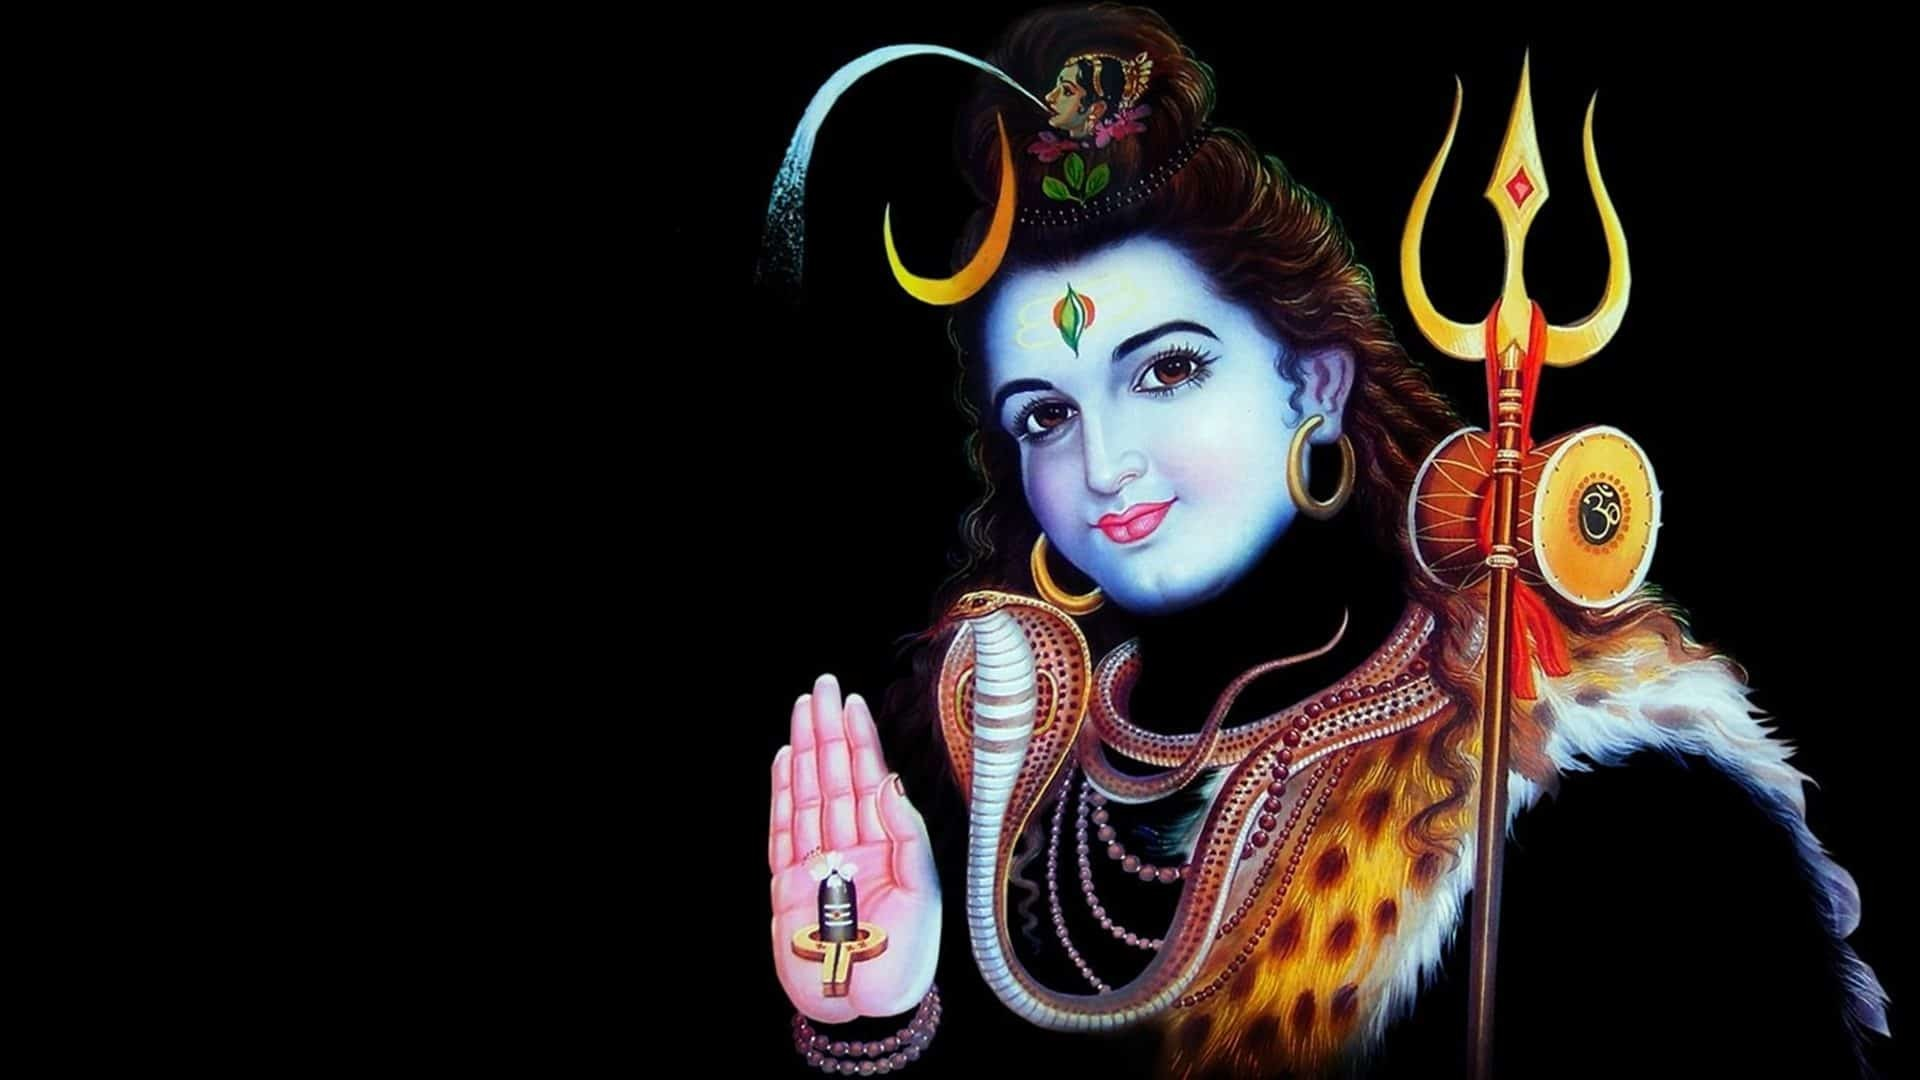 Shiv Photo Wallpapers 66 Images